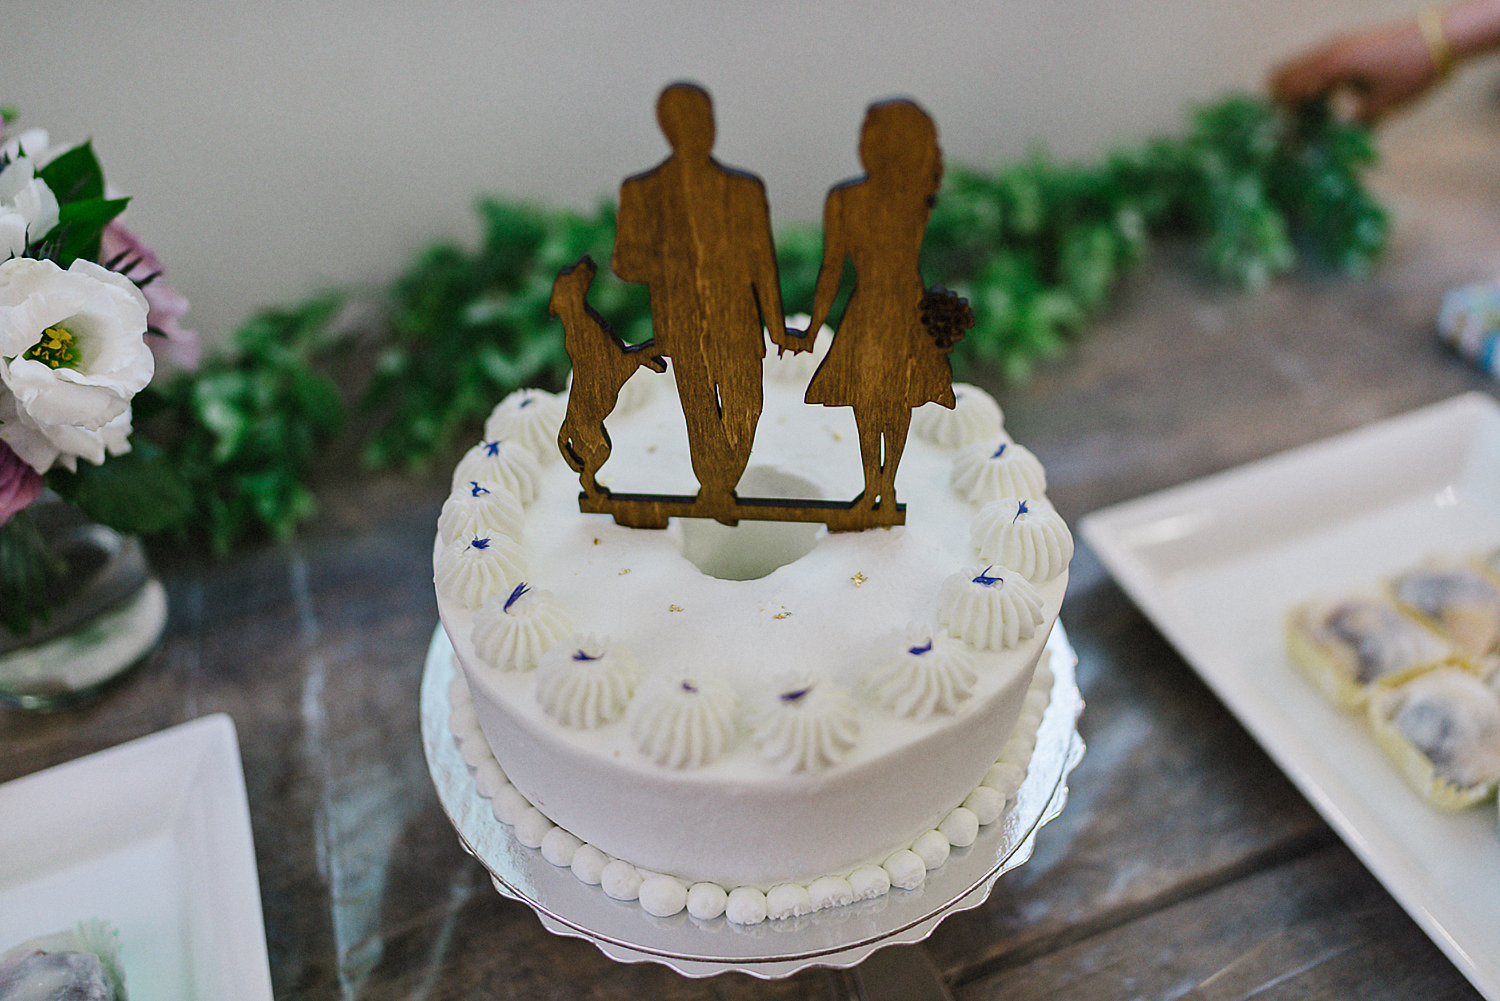 Unique-Wedding-Cake-Ideas-Toronto-Vintage-Bride-Outdoor-Forest-Wedding-Venue-High-Park-Downtown-Toronto_Candid-Editorial-Documentary-Wedding-Photographers-Dog-and-Owners-Cake-Topper.jpg